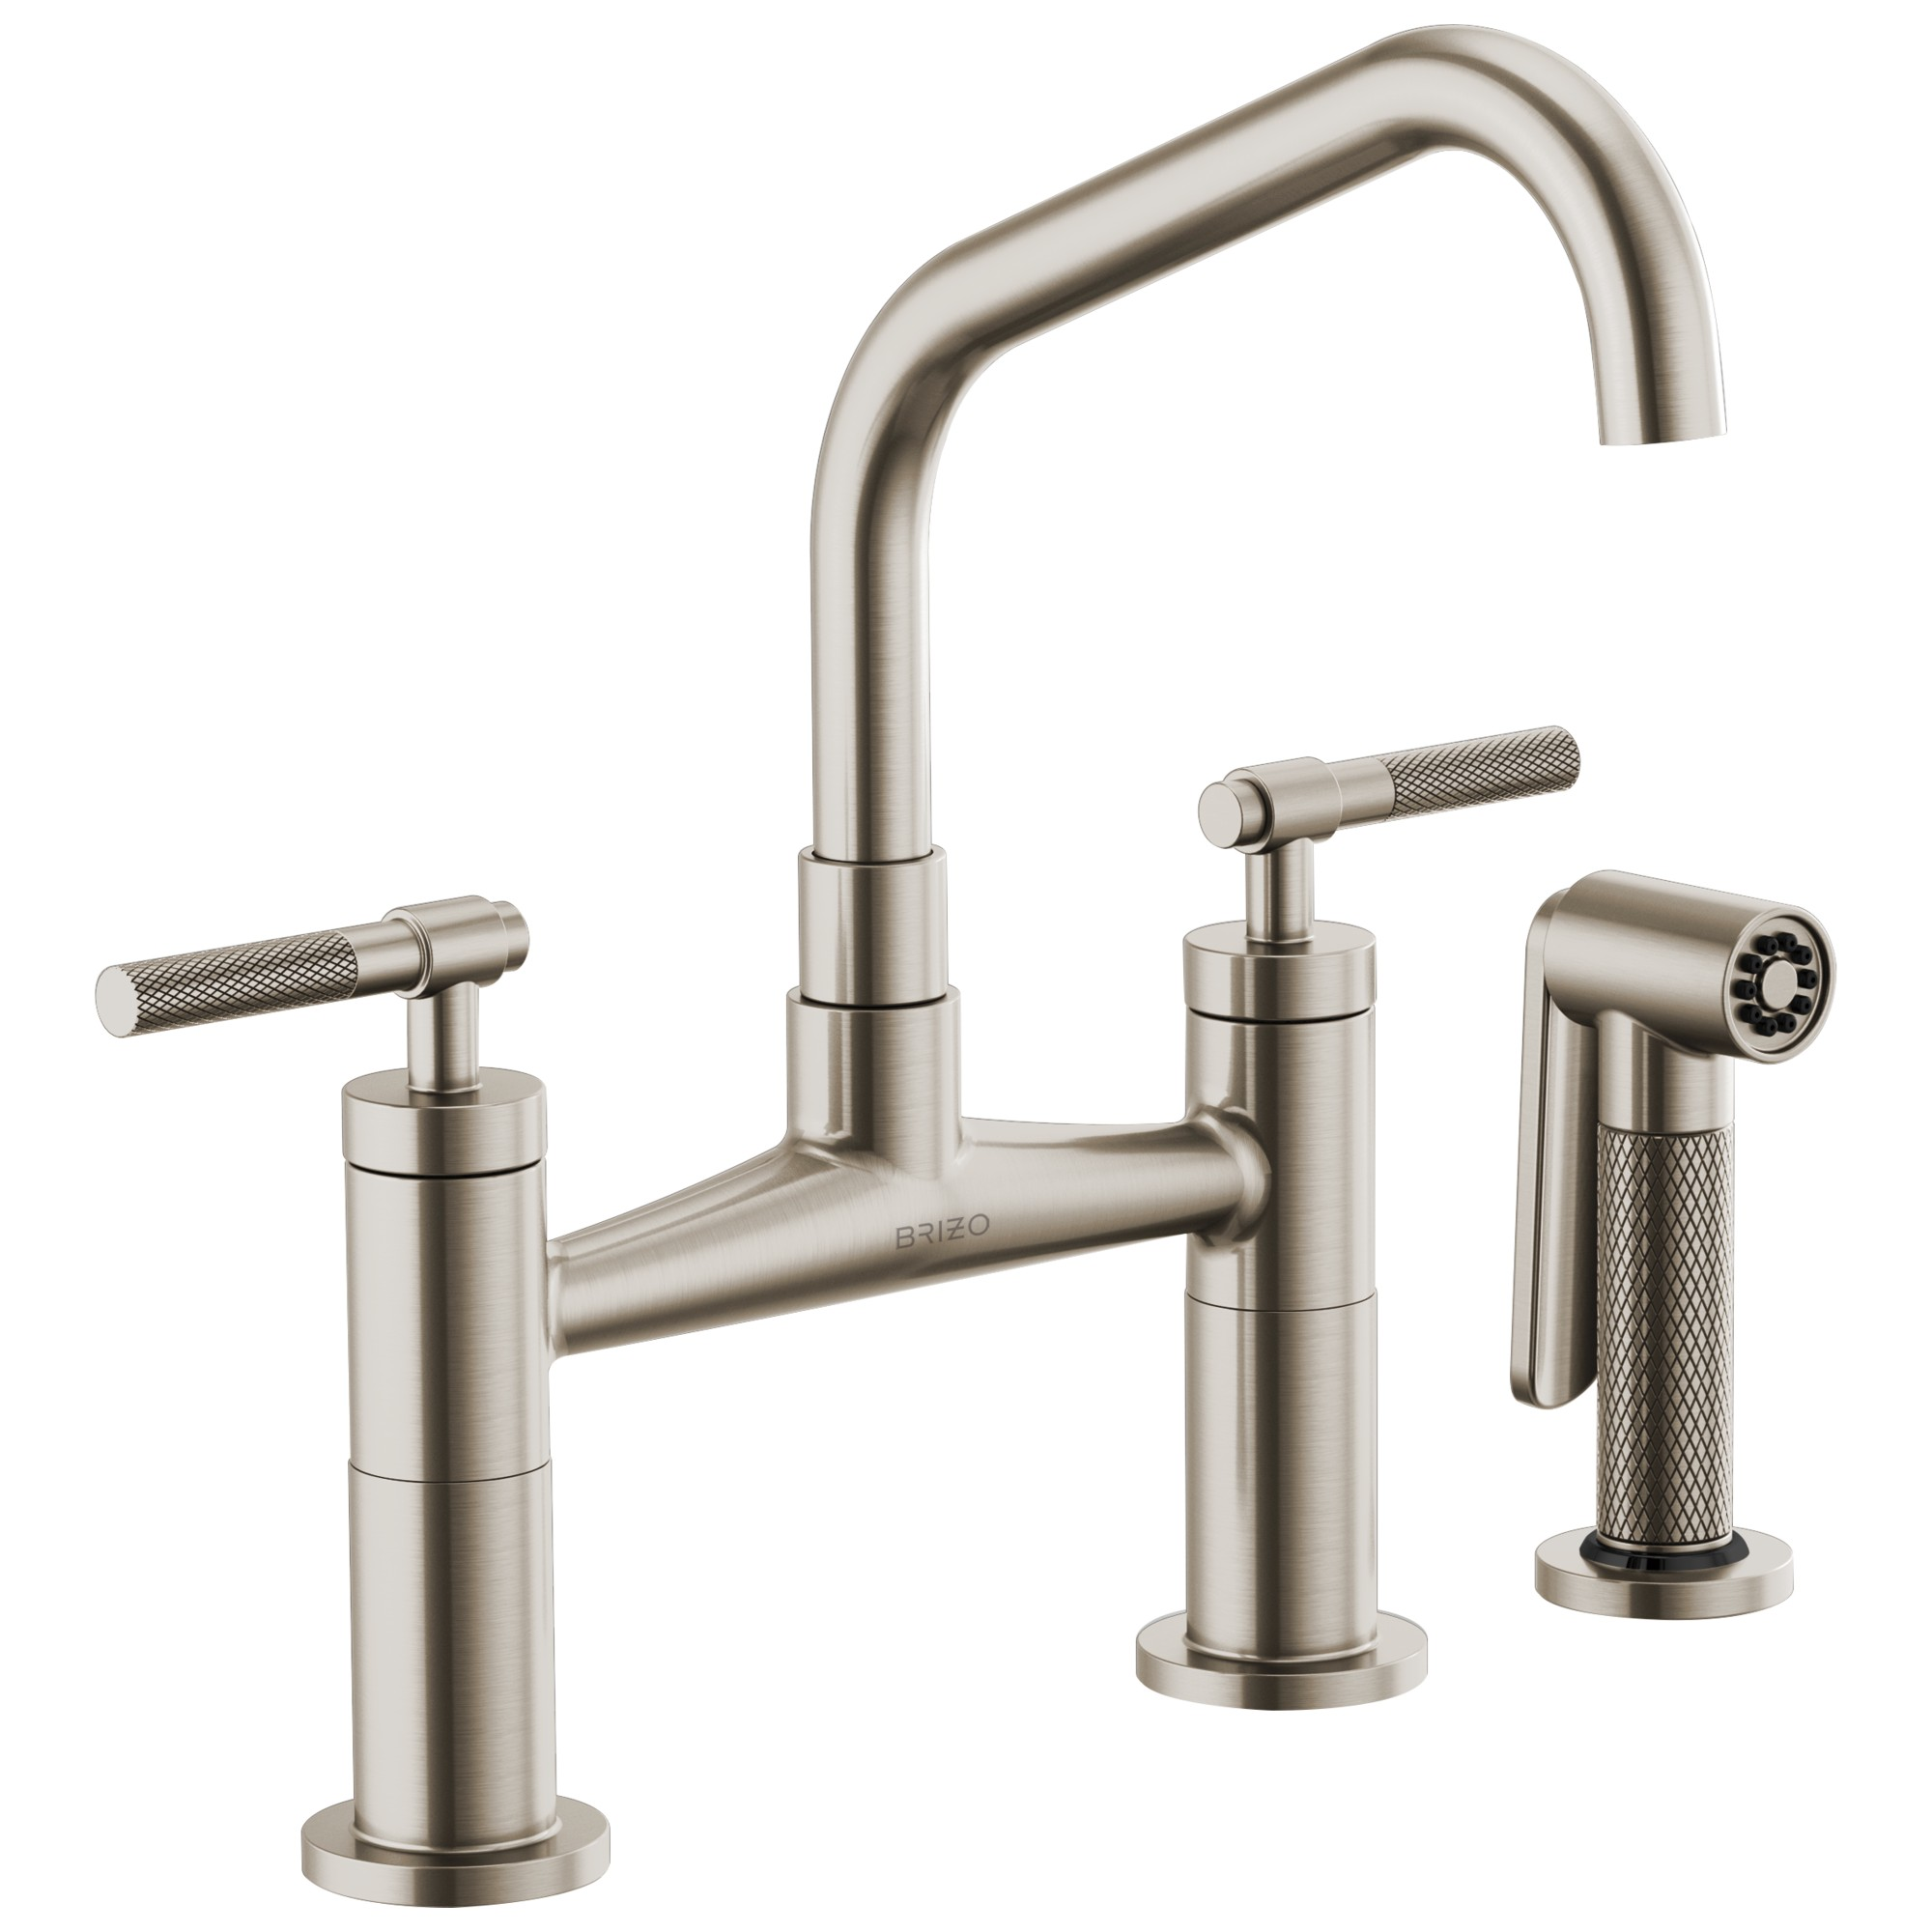 Brizo 62563LF-SS Litze Bridge Faucet with Angled Spout and Knurled Handle - Stainless